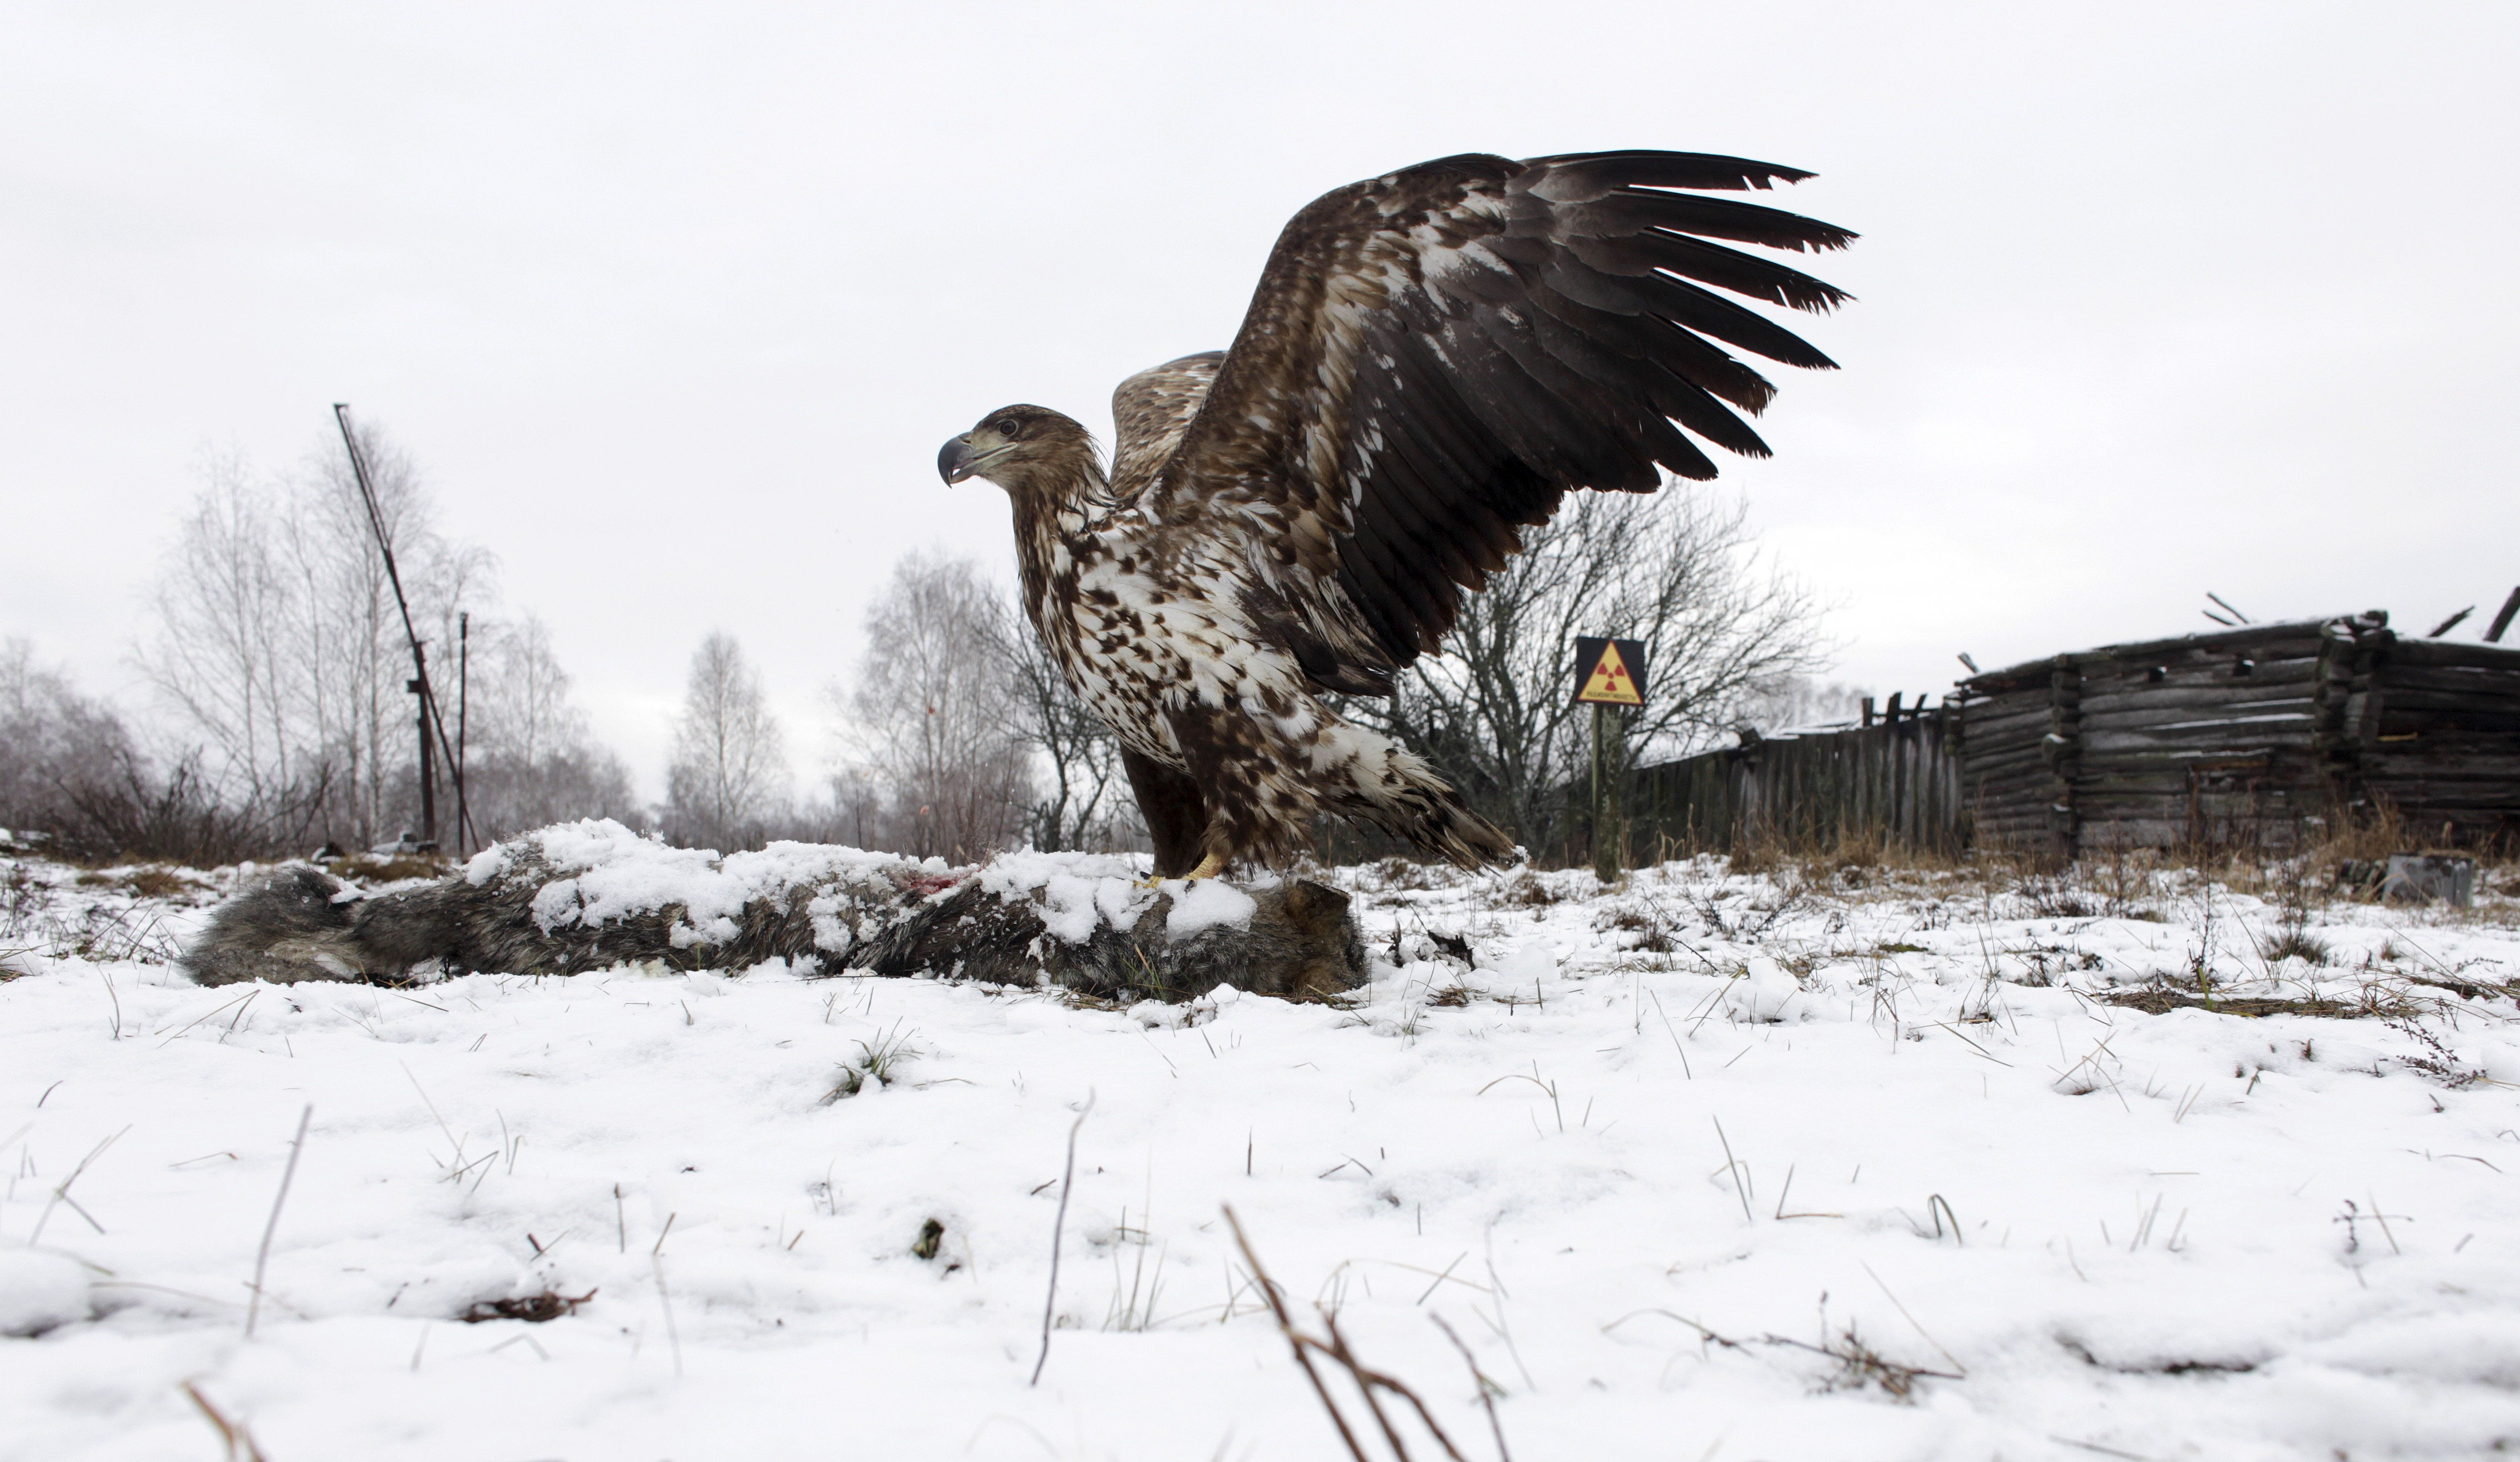 A white-tailed eagle lands on a wolf's carcass in the 30 km (19 miles) exclusion zone around the Chernobyl nuclear reactor, i